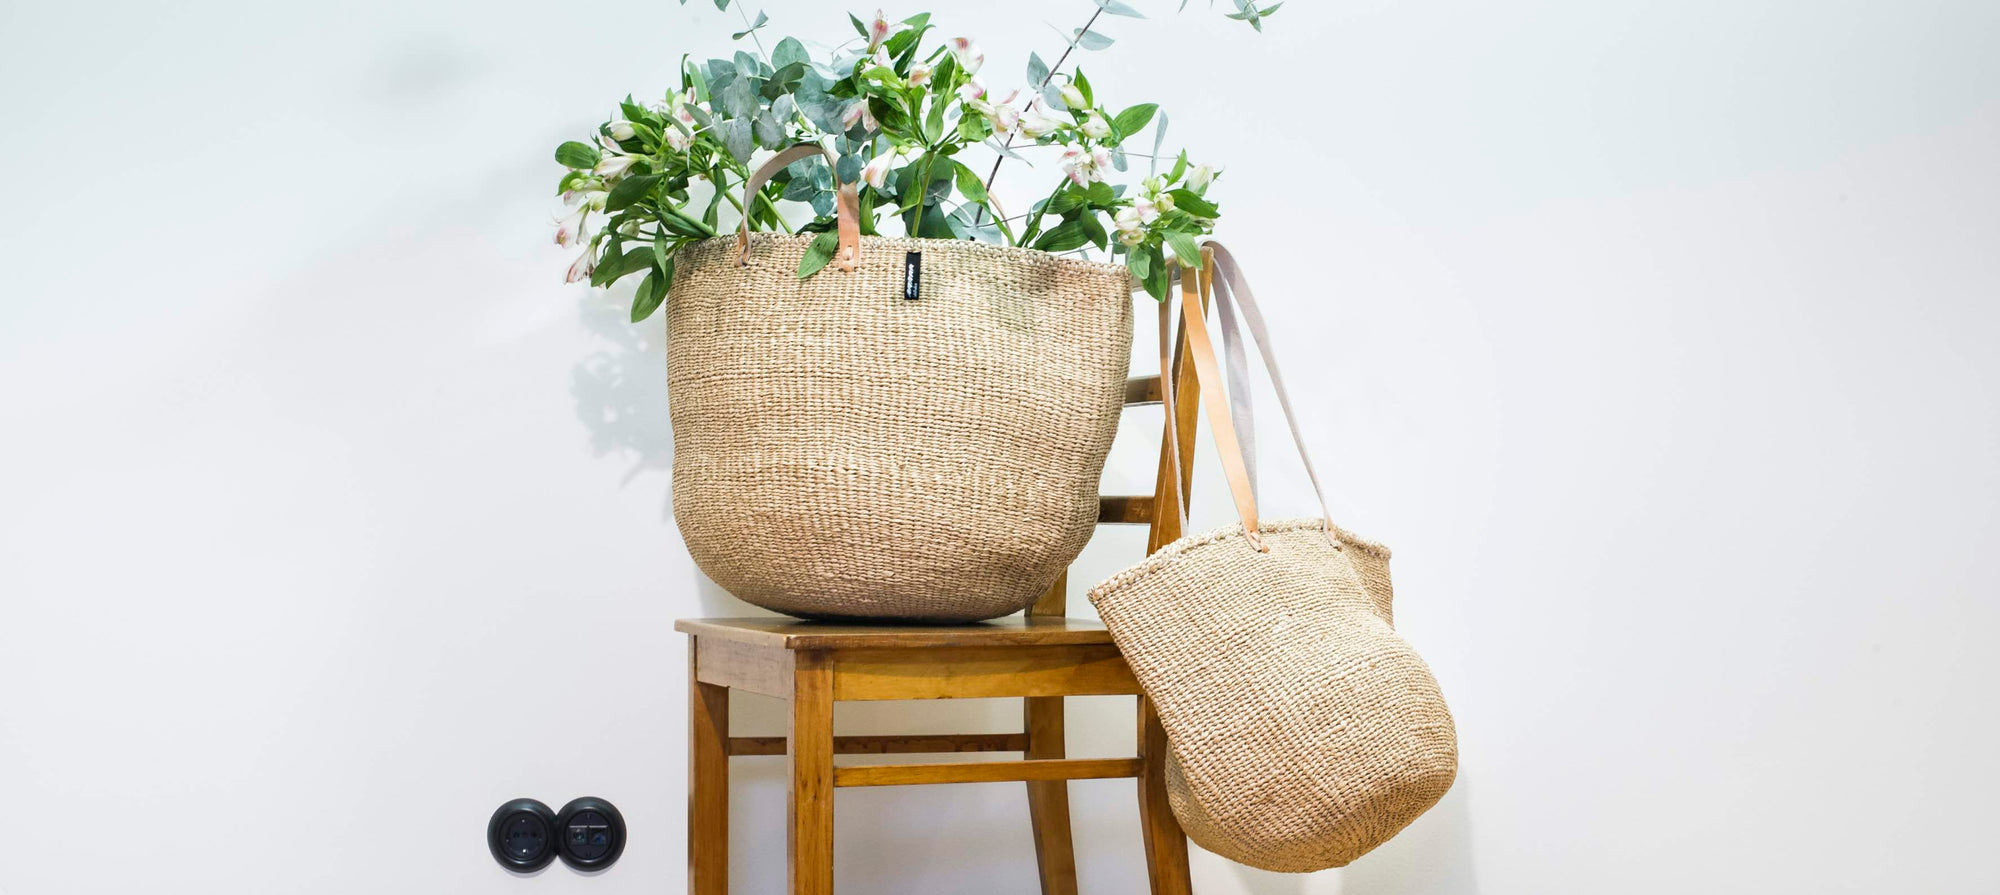 Eco-friendly baskets made of paper